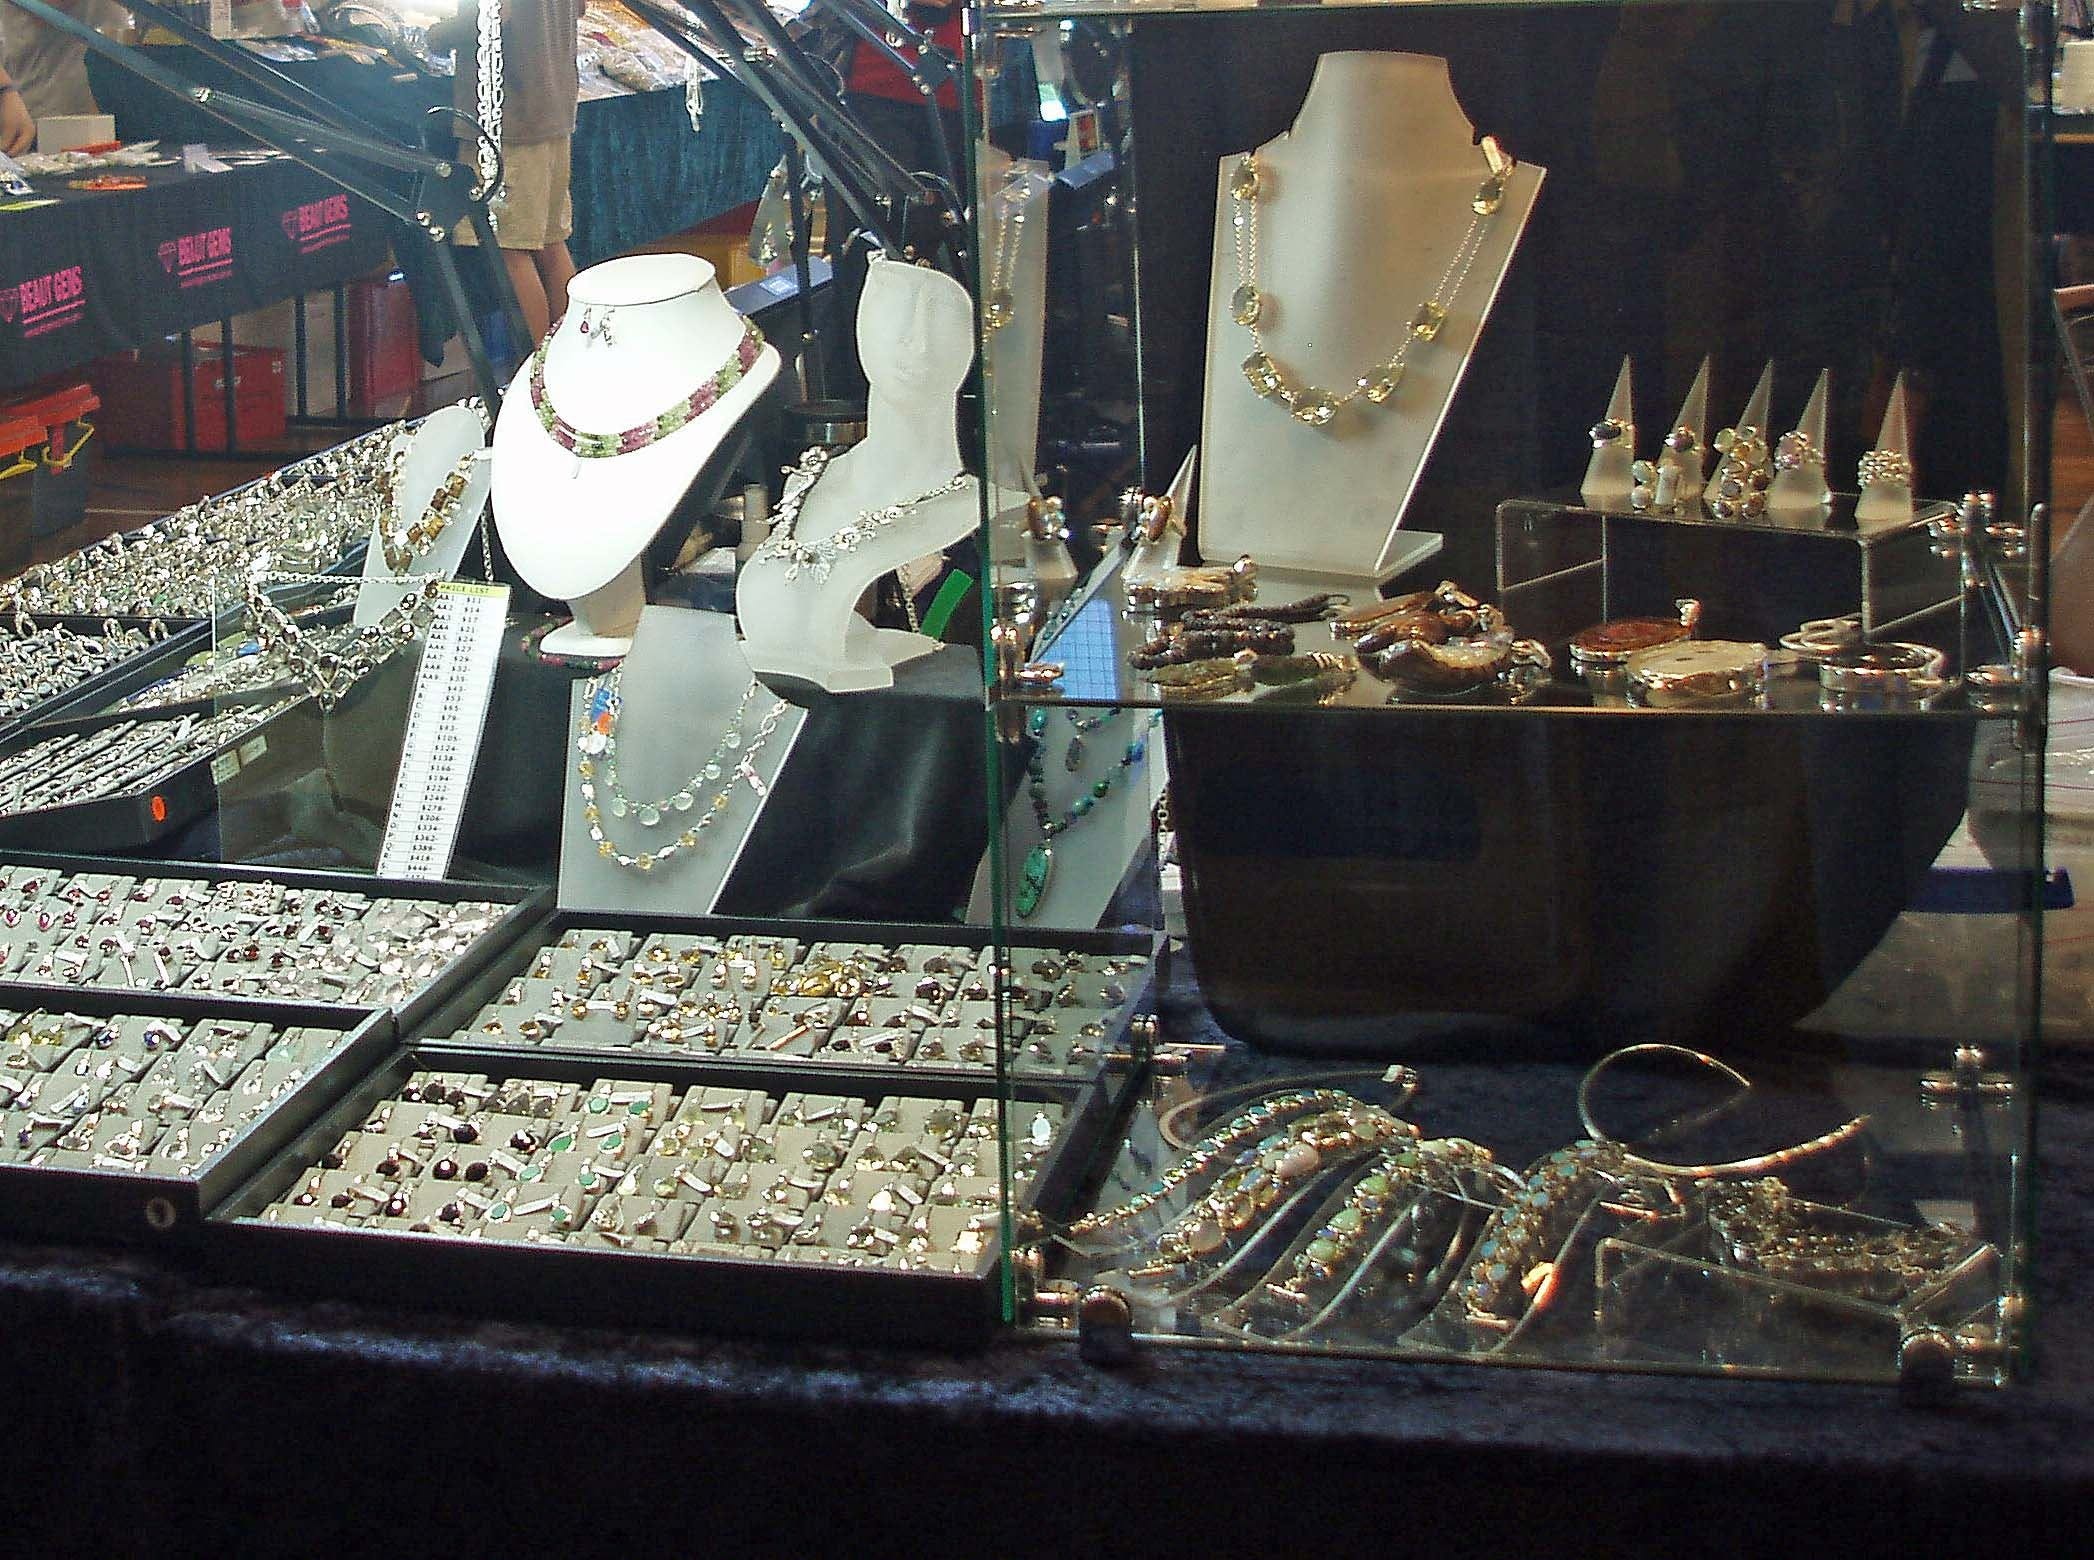 Toowoomba Gemfest - Gems and Jewellery - Yarra Valley Accommodation